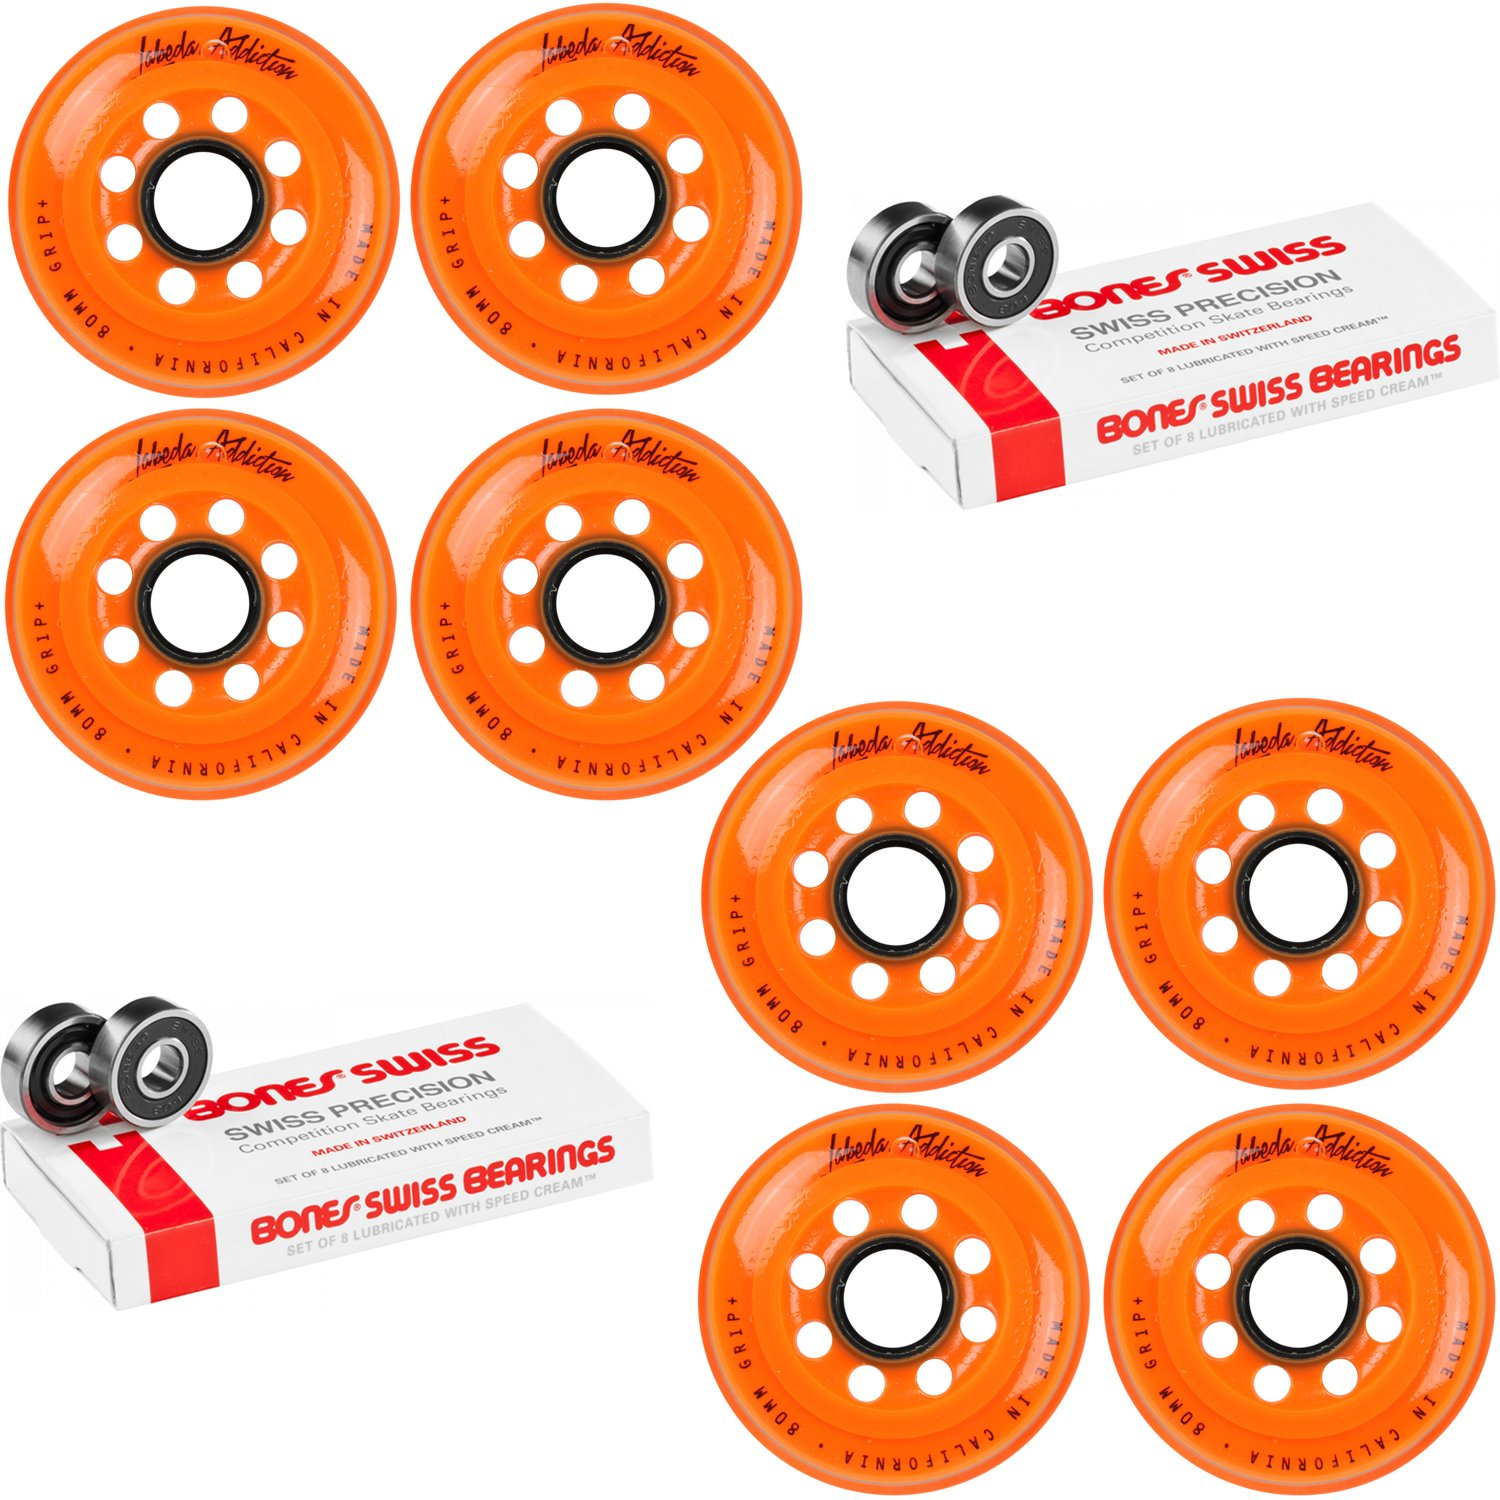 Labeda Inline Roller Hockey Skate Wheels Addiction Orange 80mm 8 Set Bones Swiss